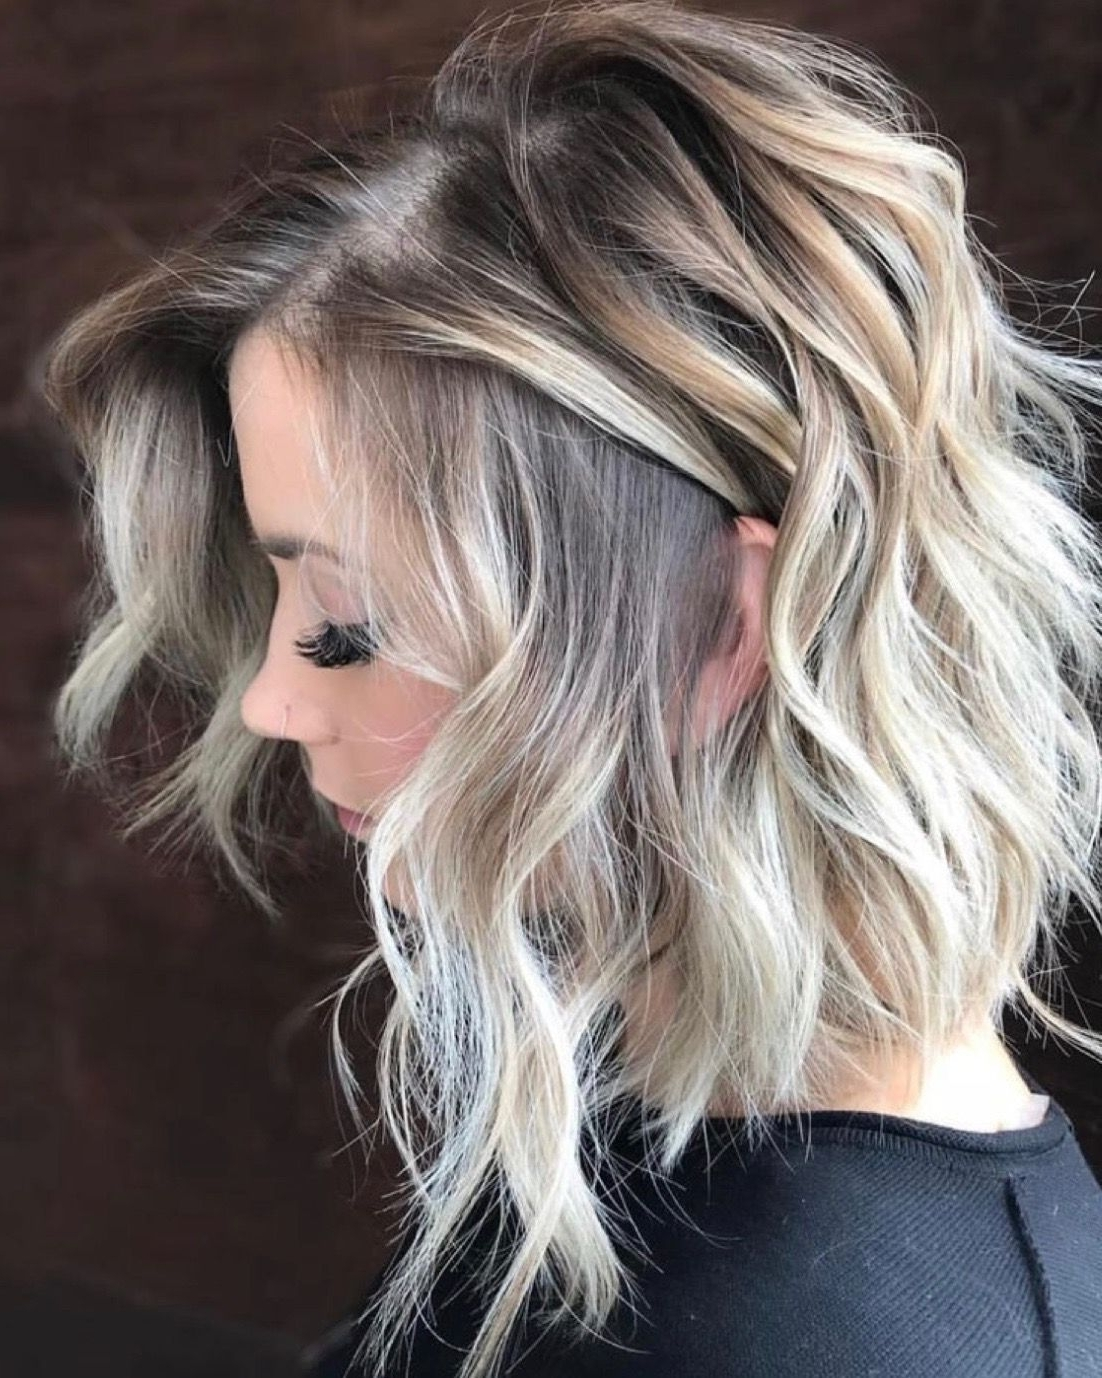 Dimensional Cool Toned Blonde Balayage With Beautiful Soft, Messy Intended For Latest Blonde Ponytail Hairstyles With Beach Waves (View 9 of 20)